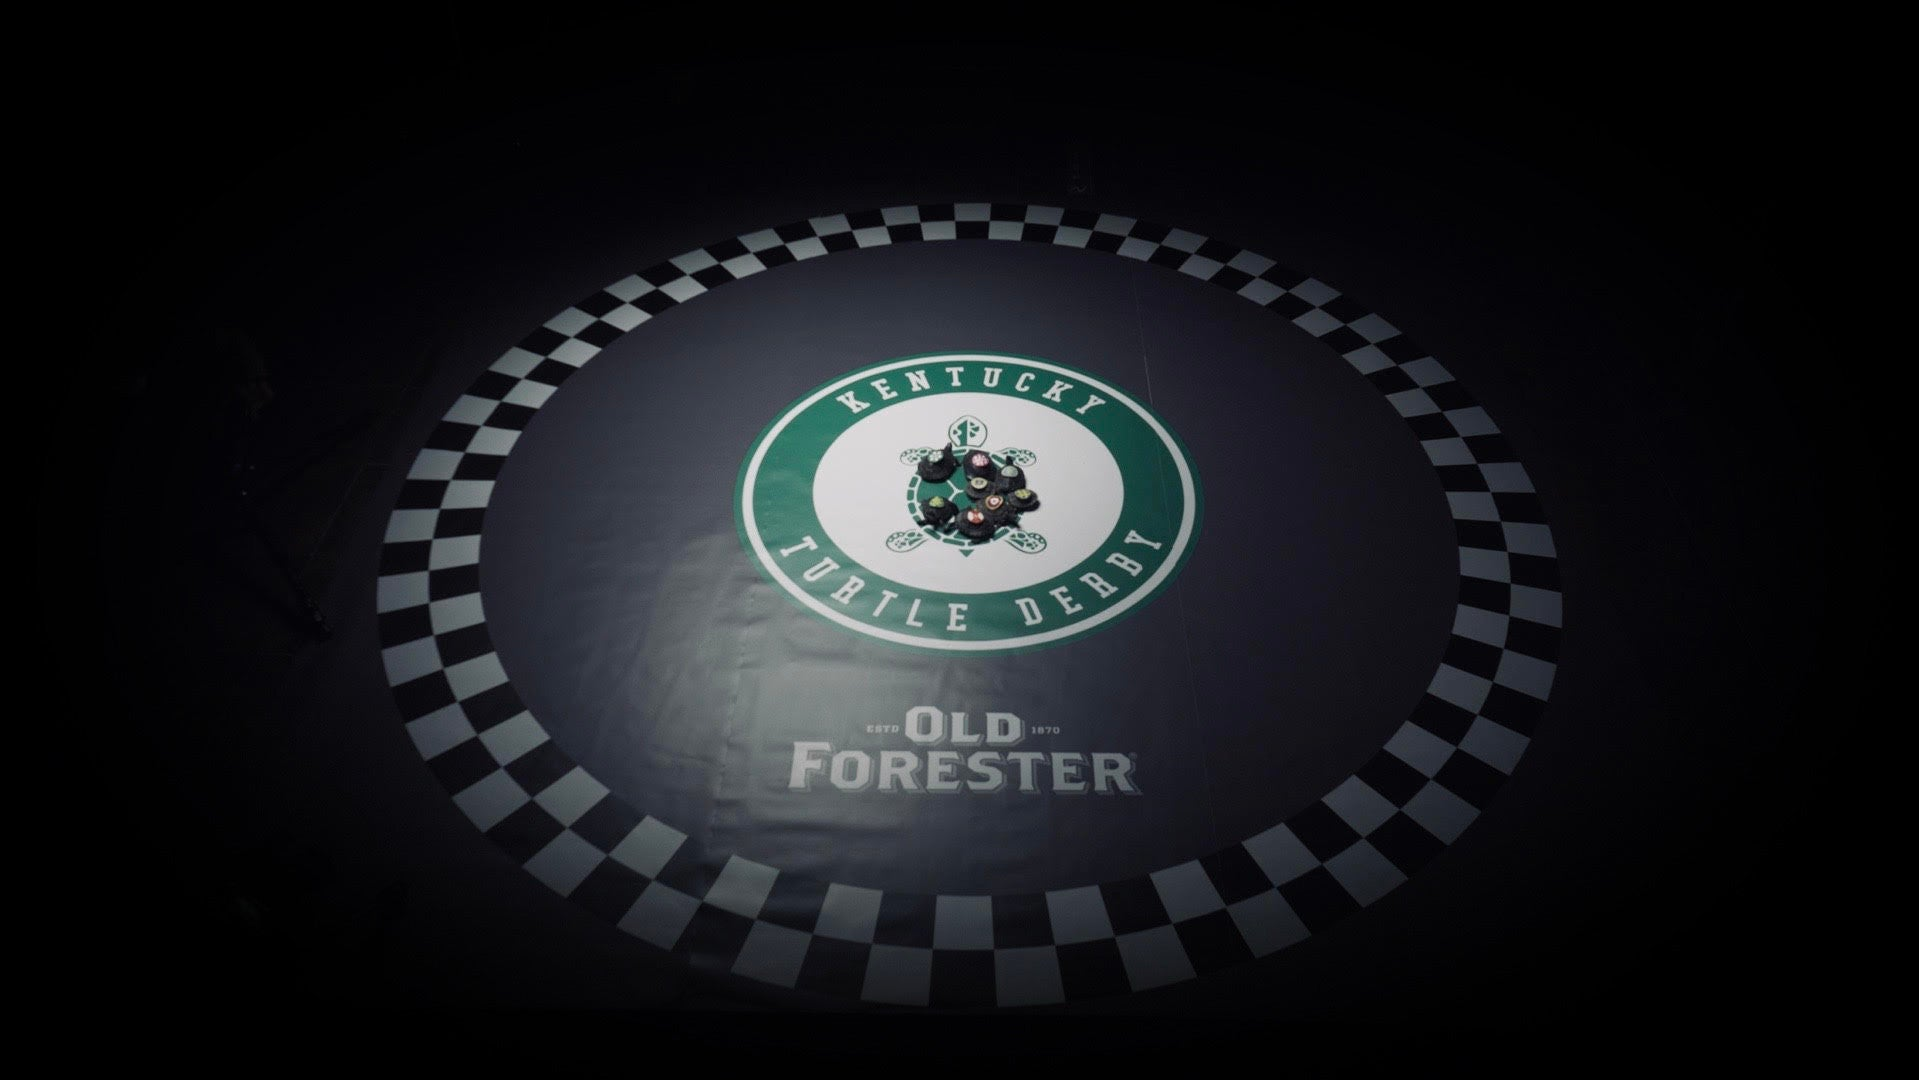 How To Watch Old Forester's 'Kentucky Turtle Derby' Tonight